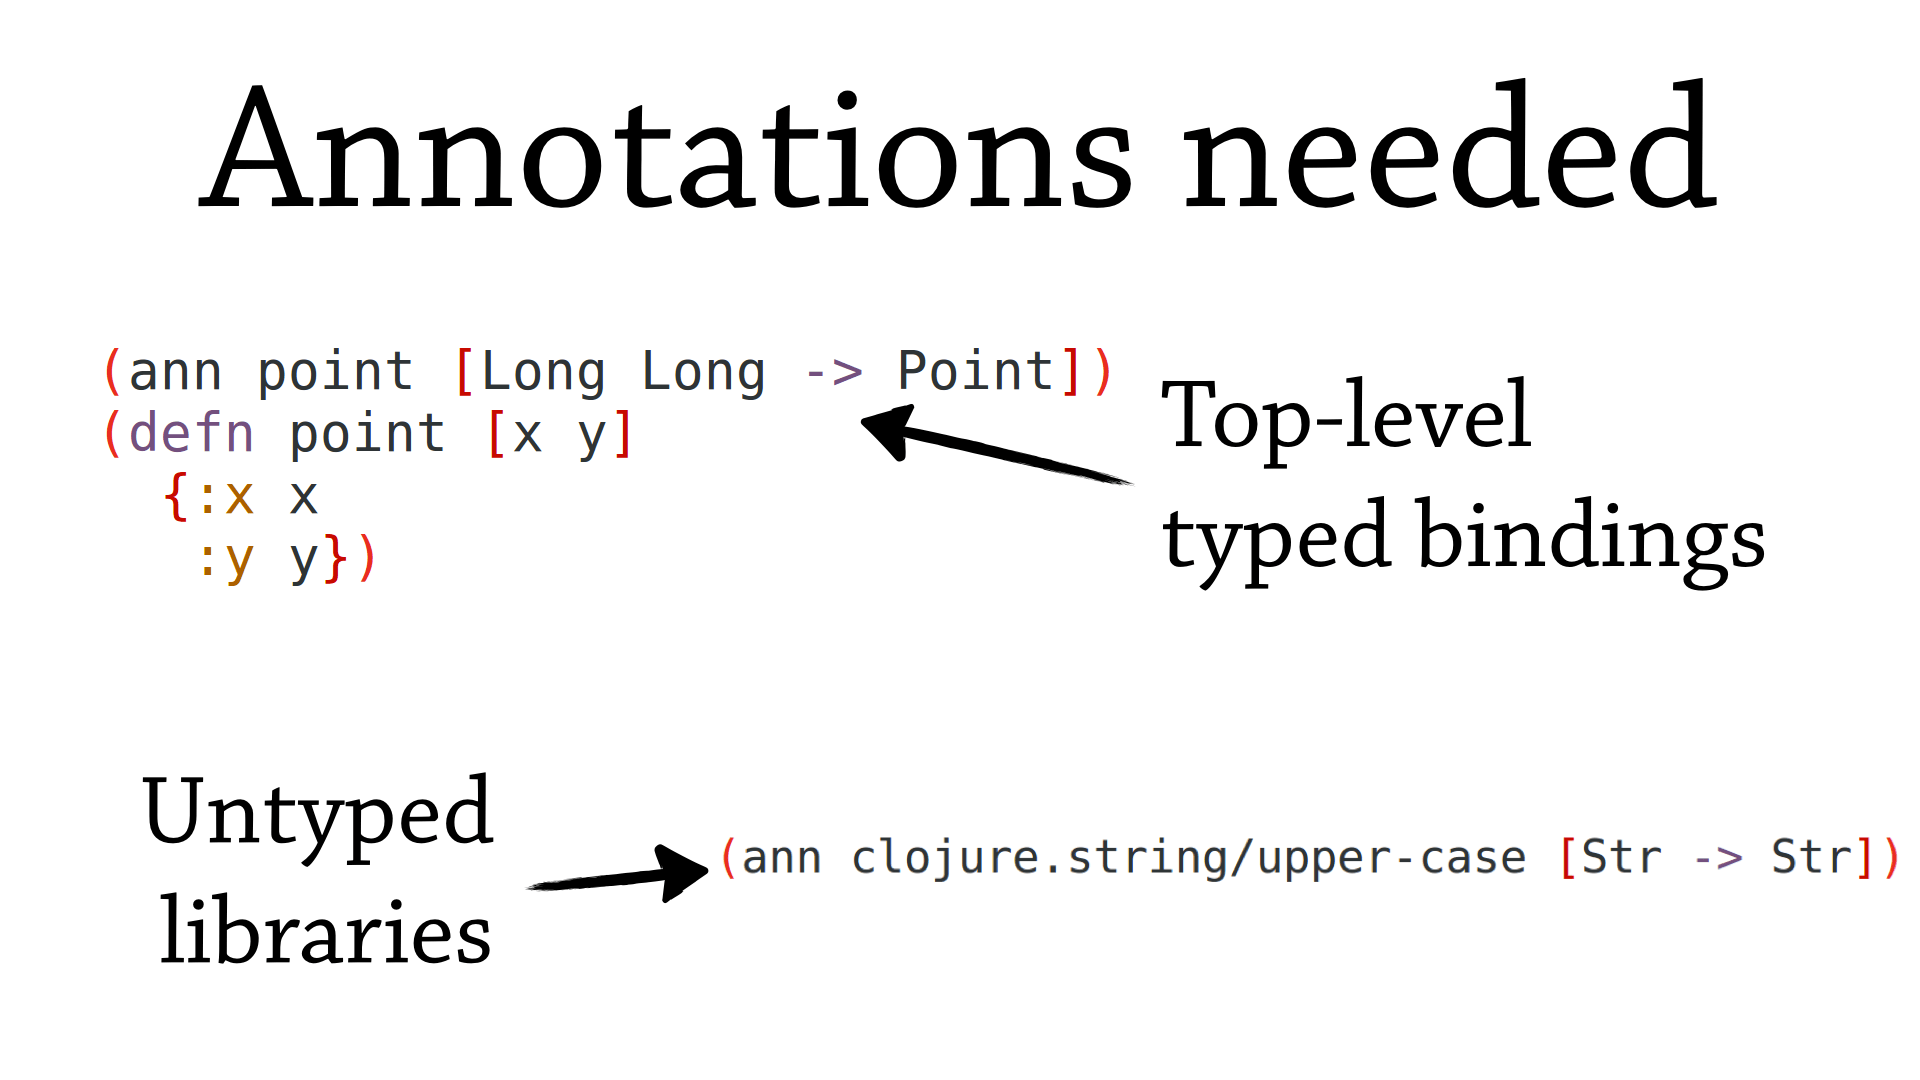 Annotations needed for top-level and library bindings